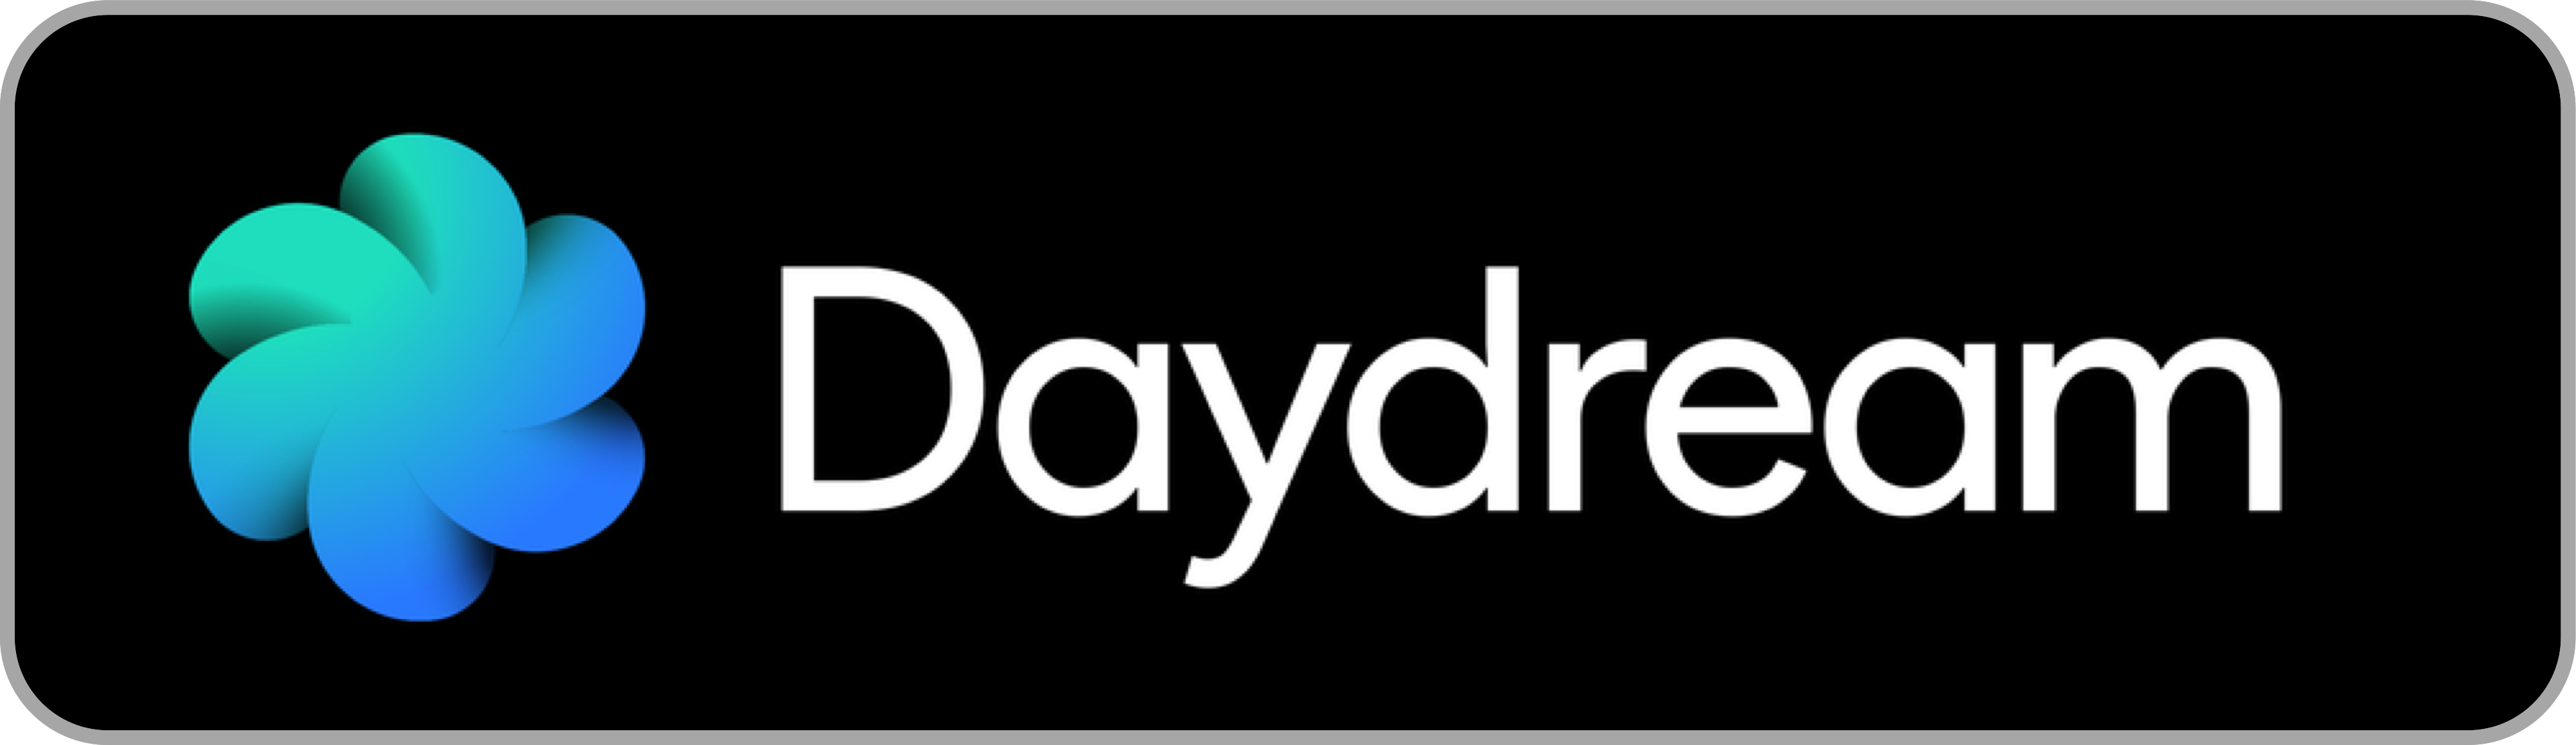 download for Daydream